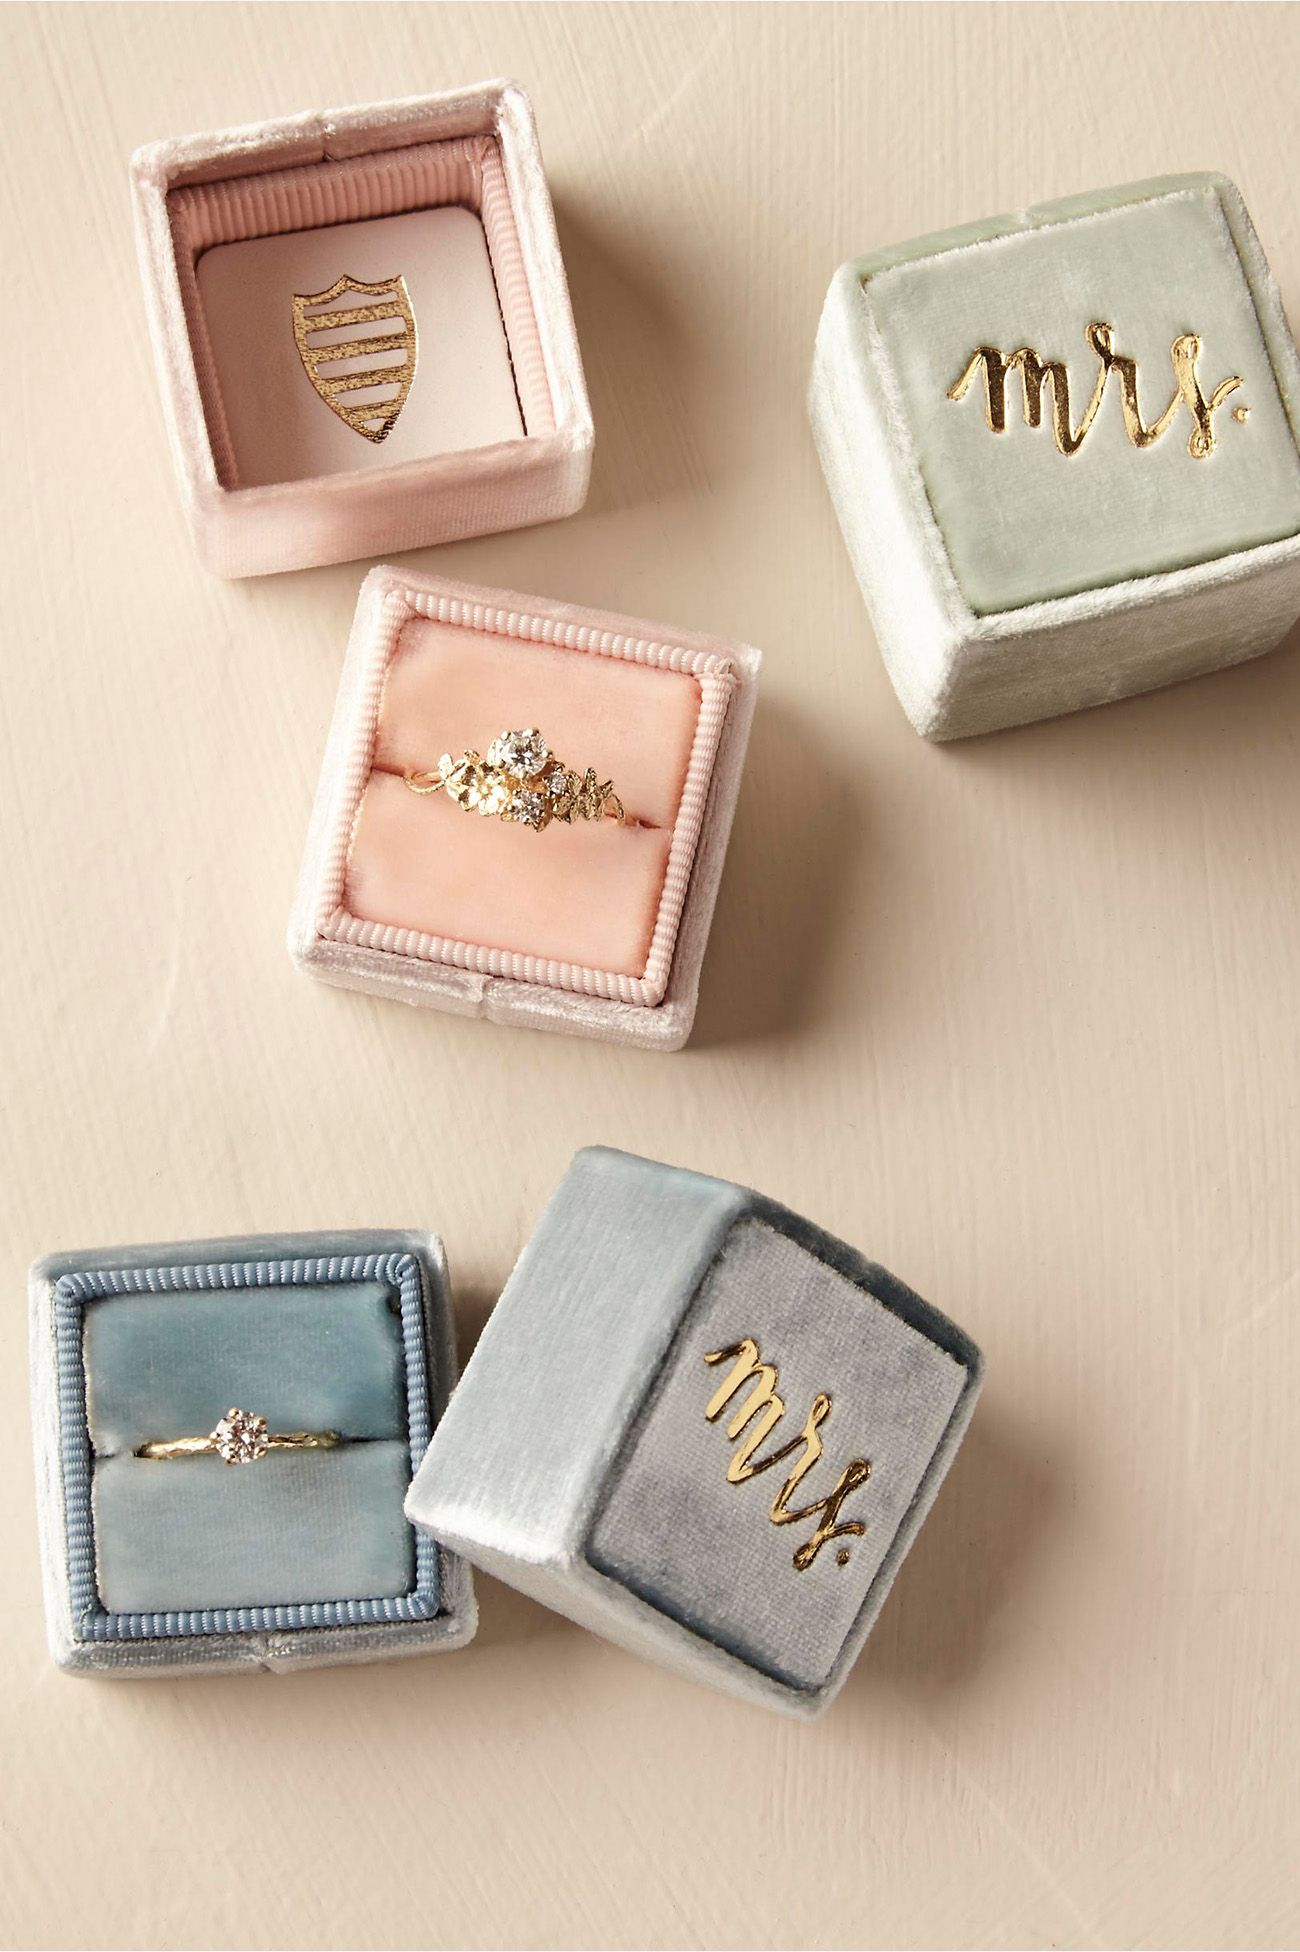 A Bhldn Exclusive Collaboration With The Mrs Box These Pee Velvet Ring Bo Make For Stunning Pictures This Special Item Is Handcrafted Upon